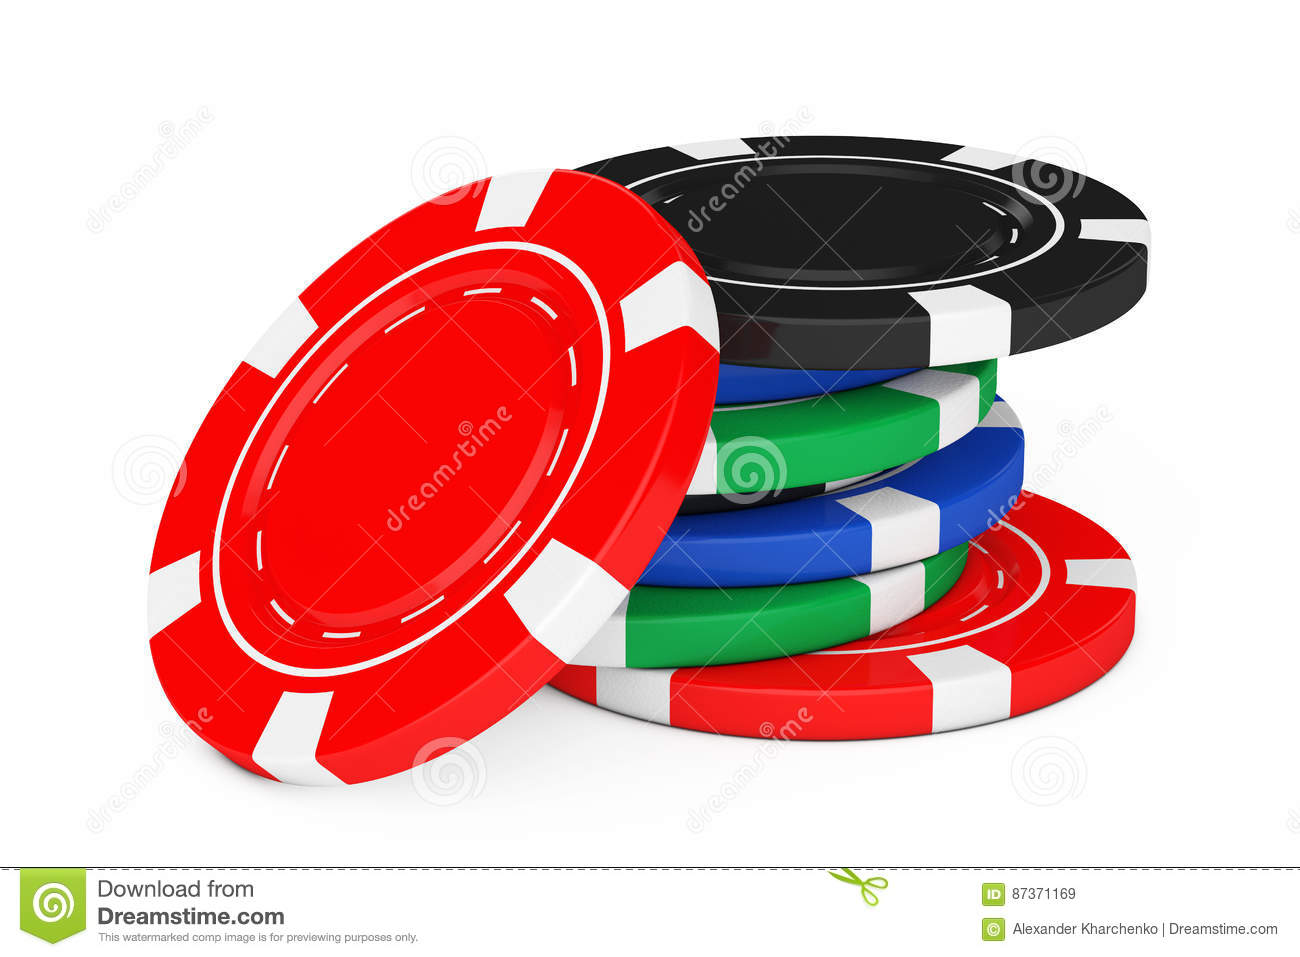 Heap of Colorful Poker Casino Chips. 3d Rendering